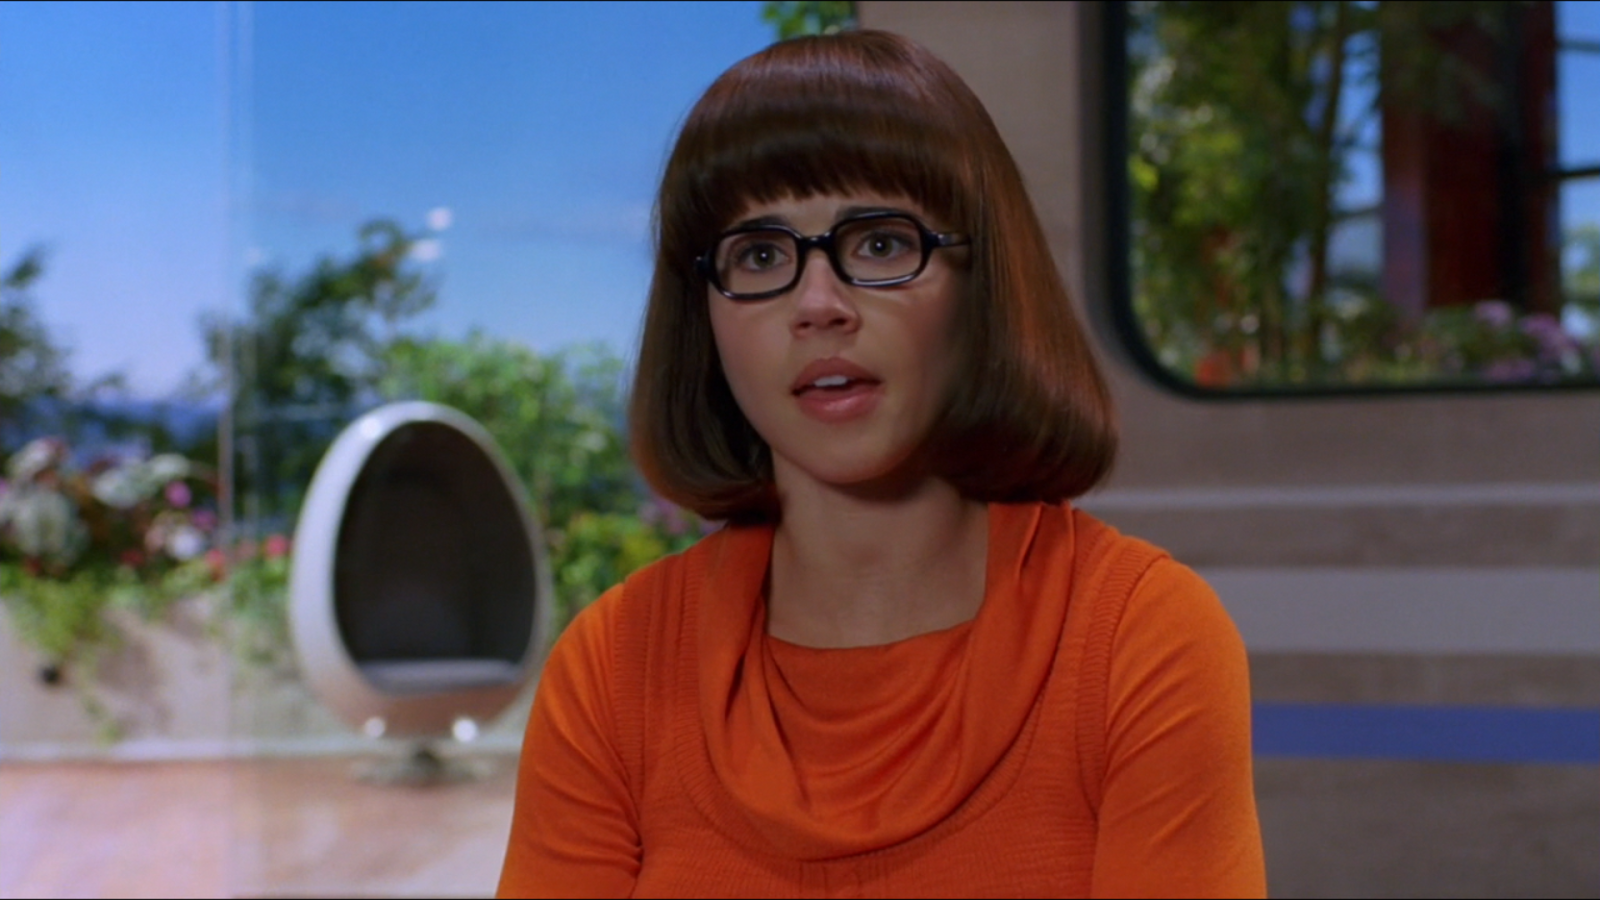 My Velma - Exposed